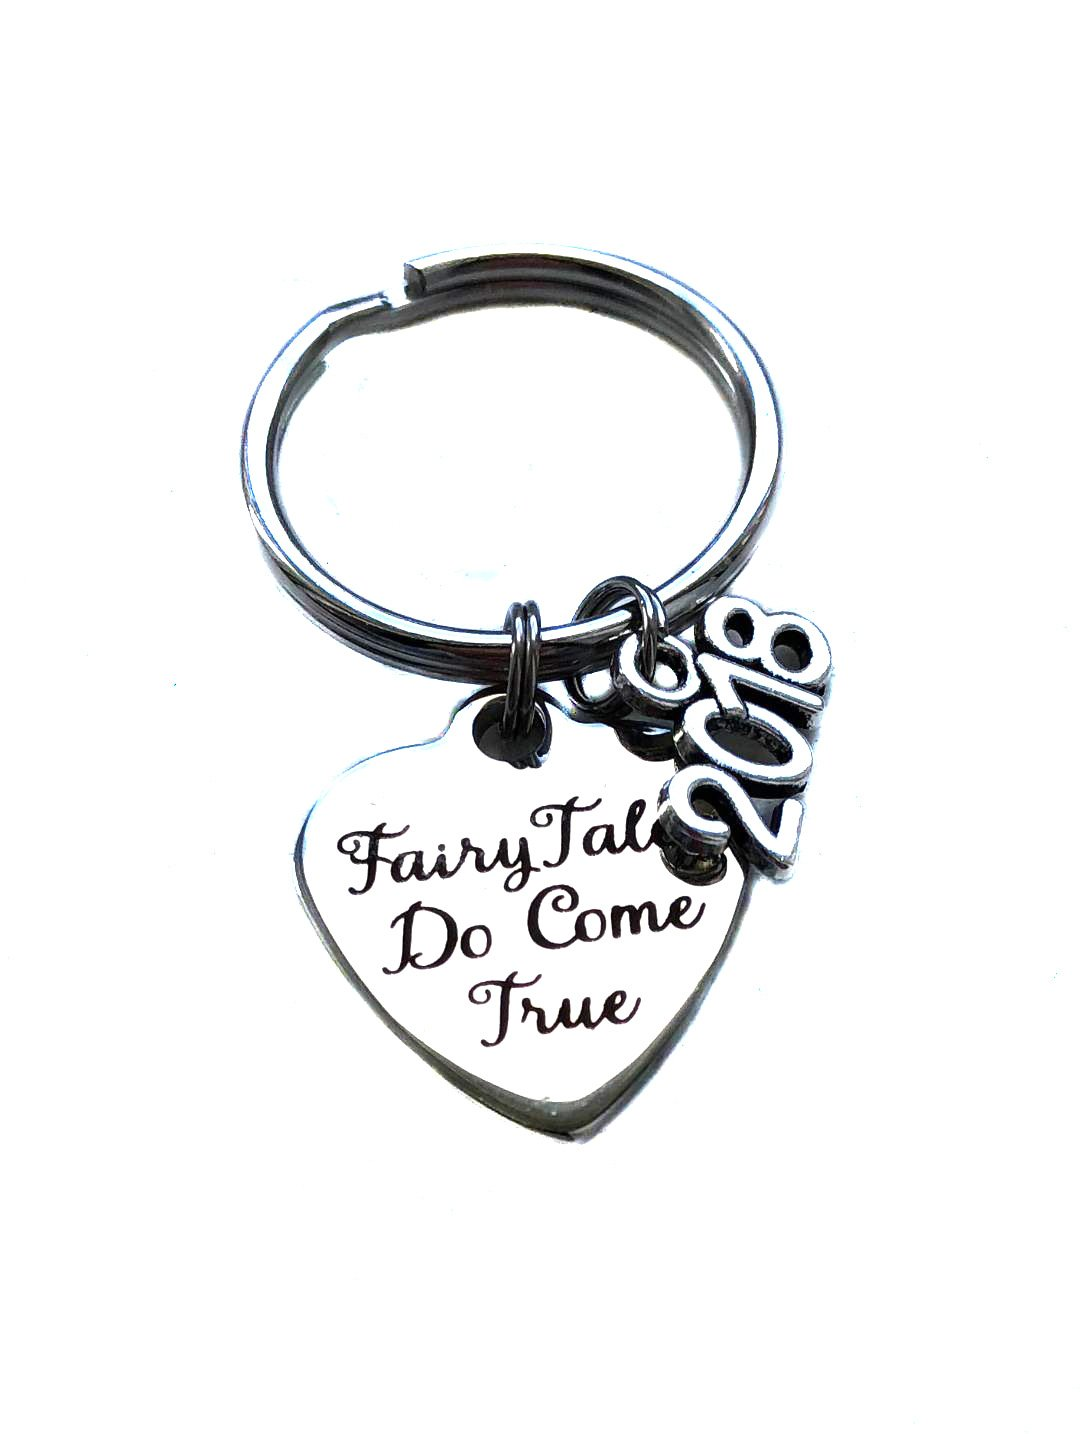 Heart Projects Stainless Steel Fairy Tales Do Come True 2018 Charm, Keychain, Wedding Engagement Bridal Shower Gift